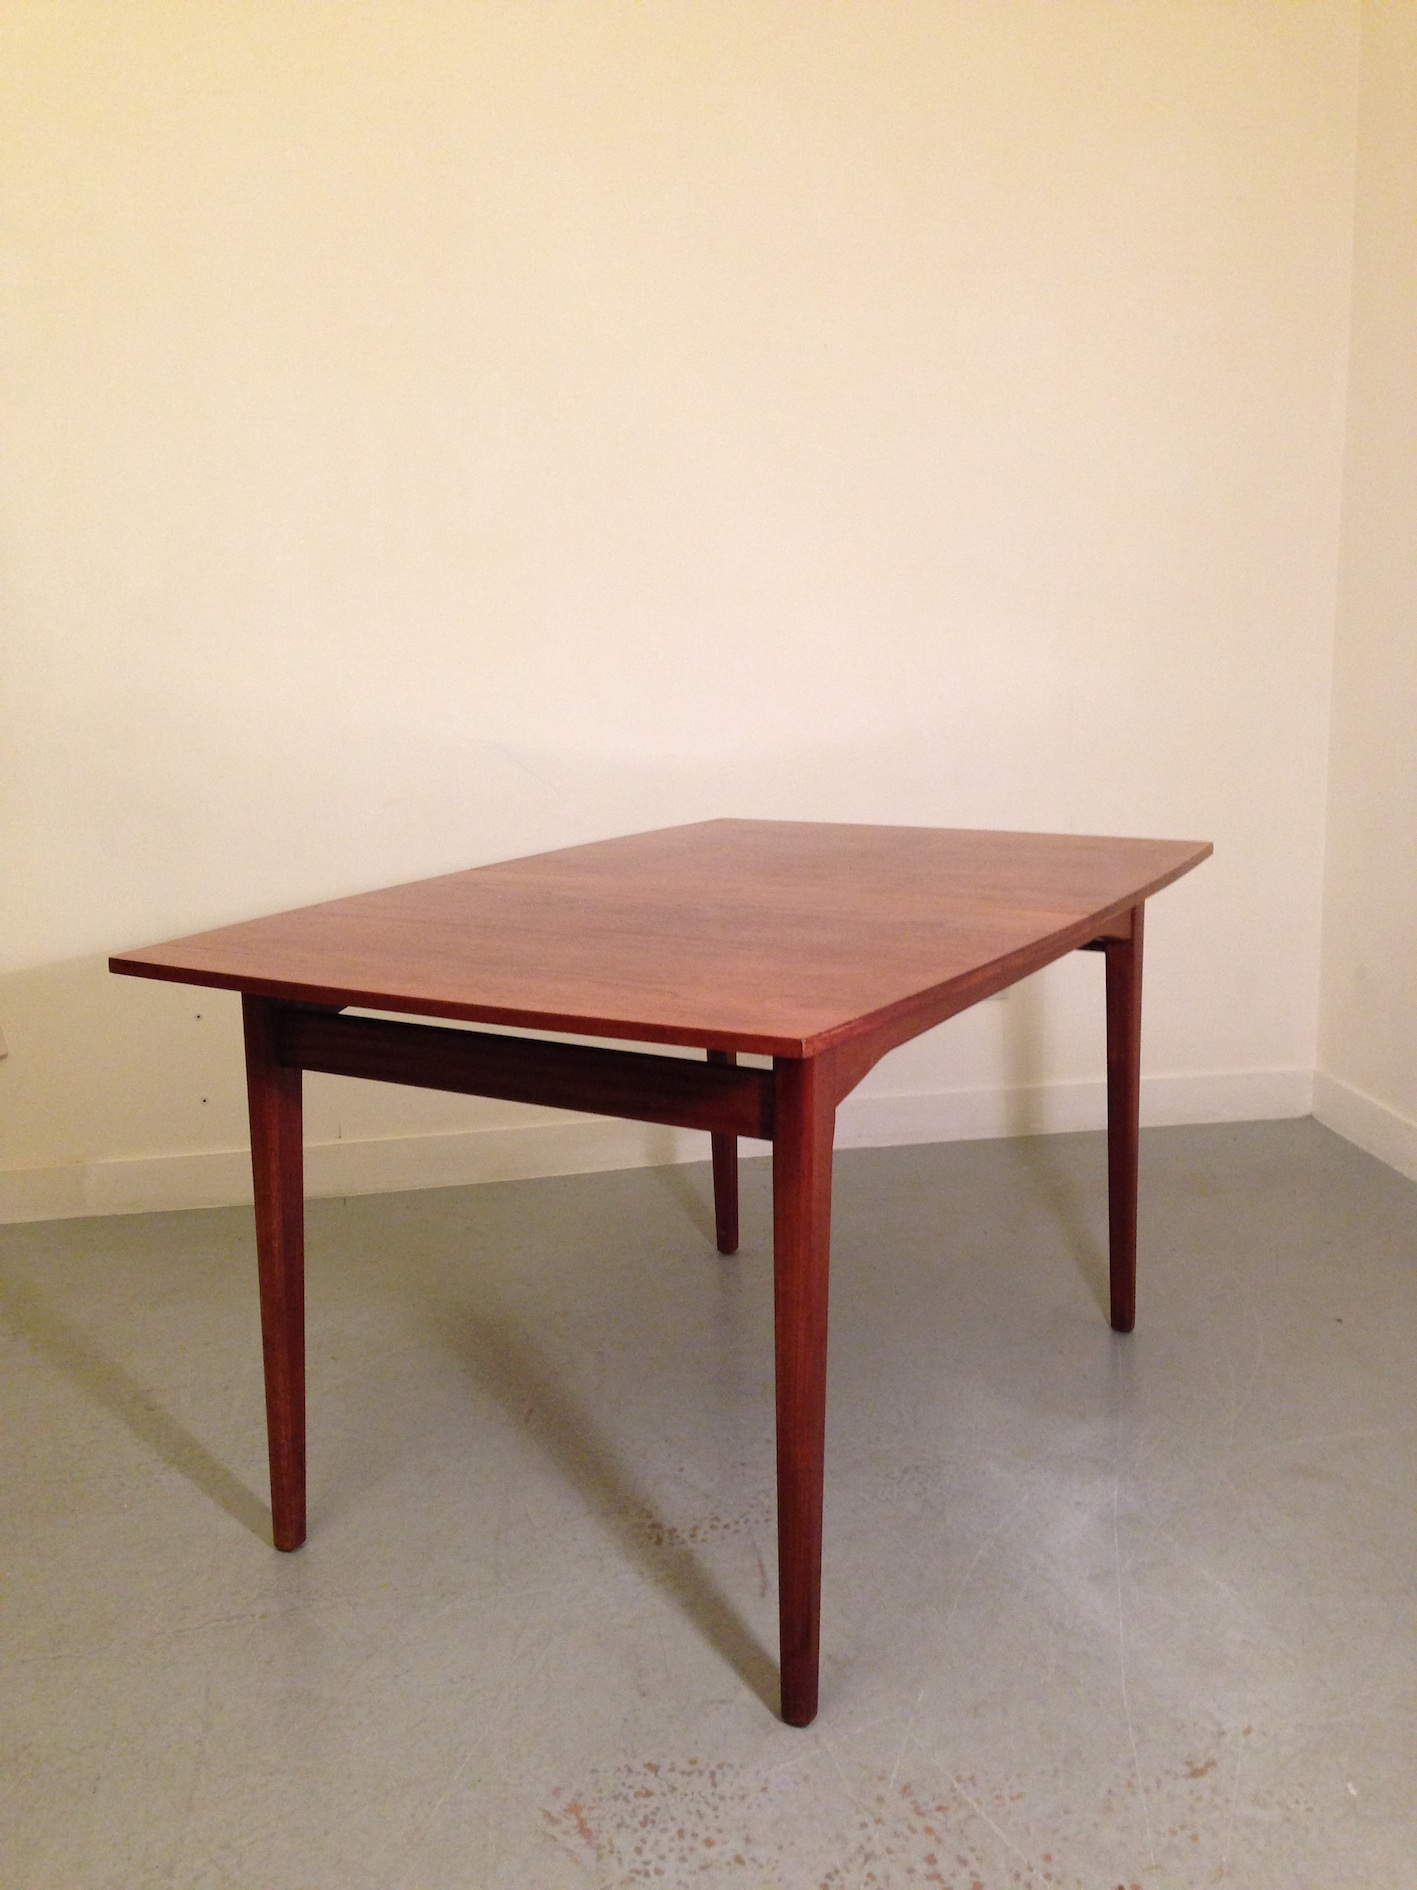 Grande table a manger 12 personnes achat table 12 - Table salle a manger 12 personnes ...